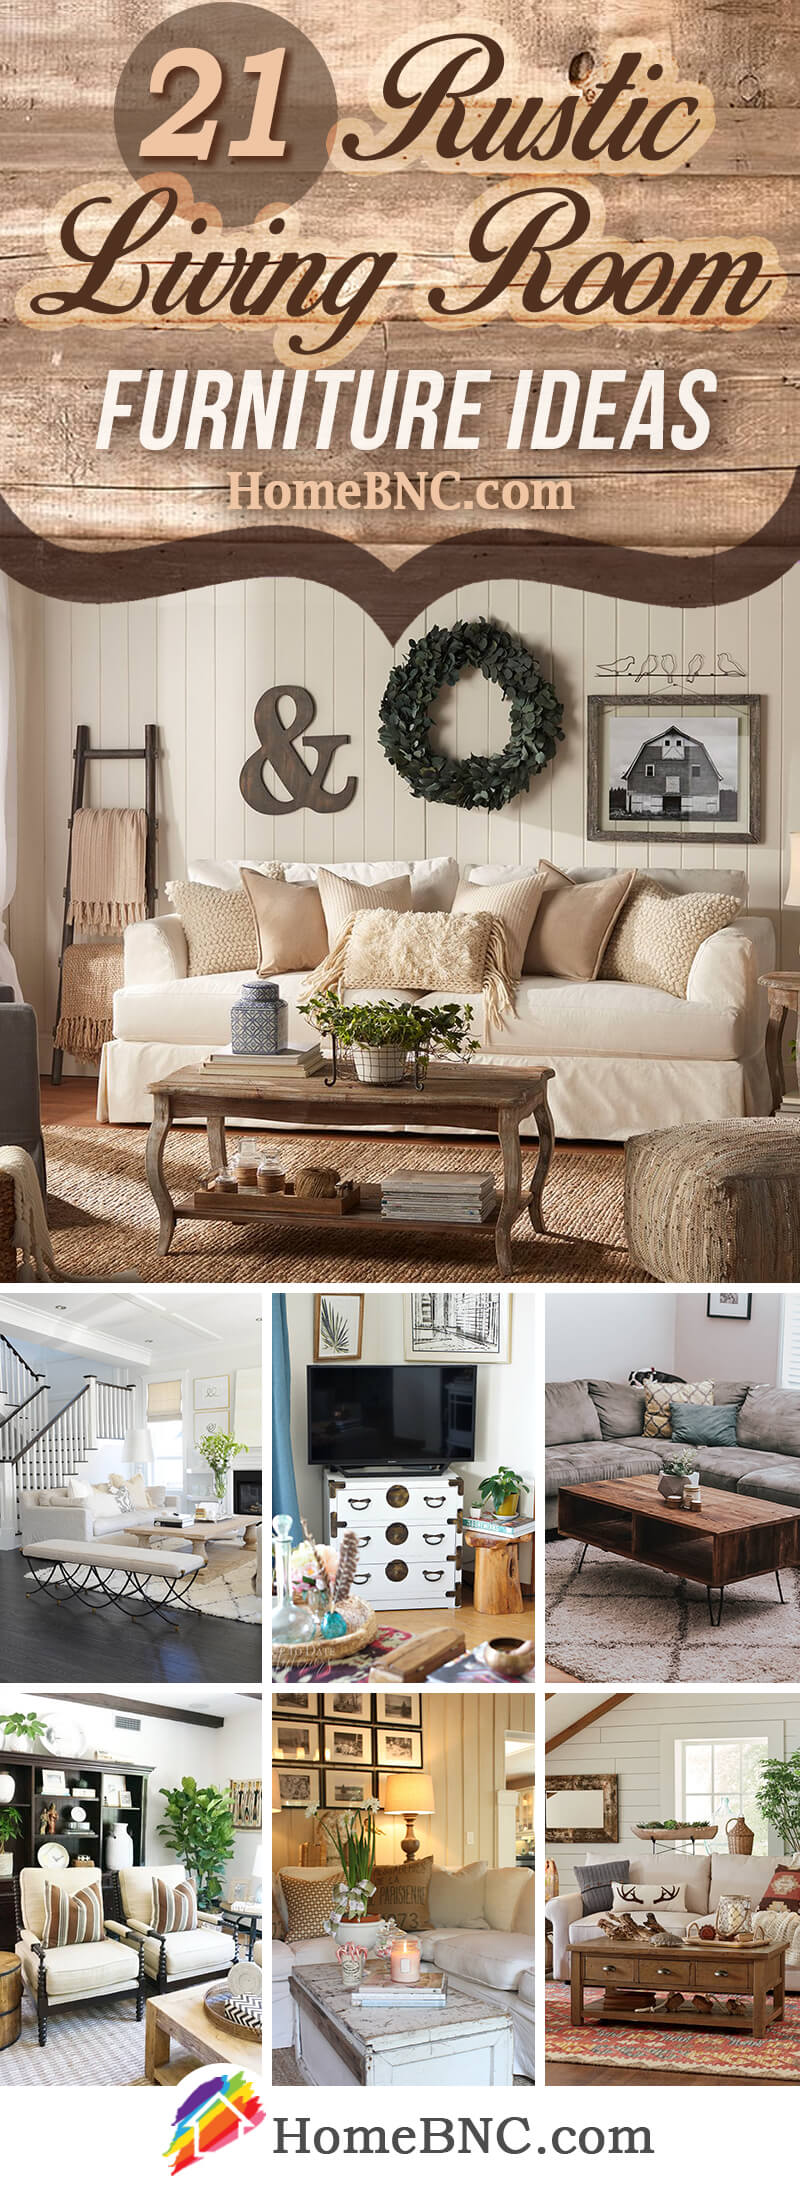 Https Homebnc Com Best Rustic Farmhouse Interior Design Ideas Farmhouseinterior: 21 Best Rustic Living Room Furniture Ideas And Designs For 2020